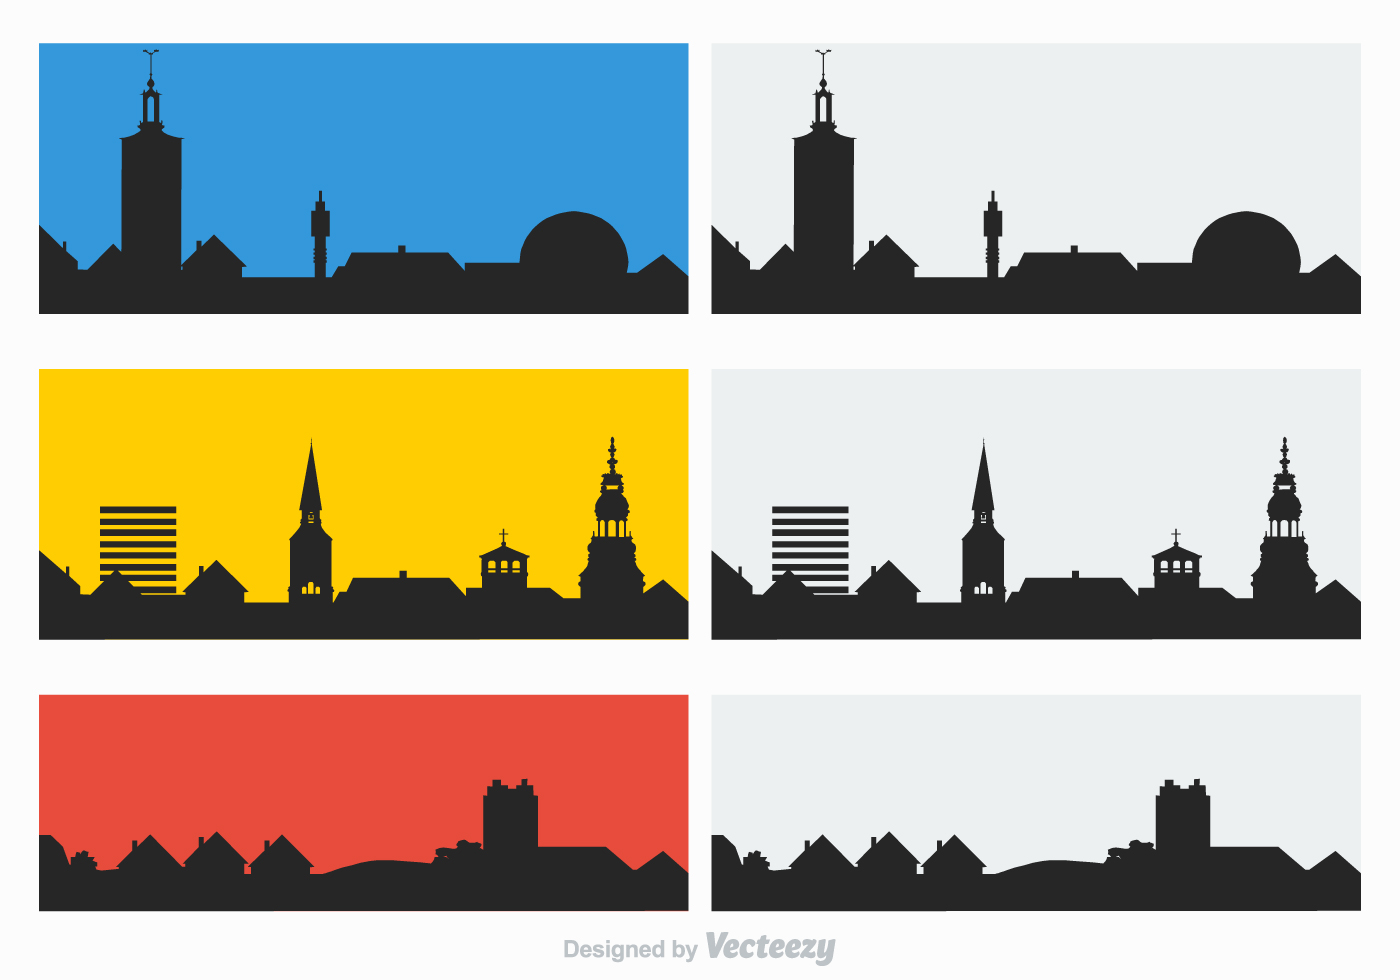 Village Skyline Free Vector Art.